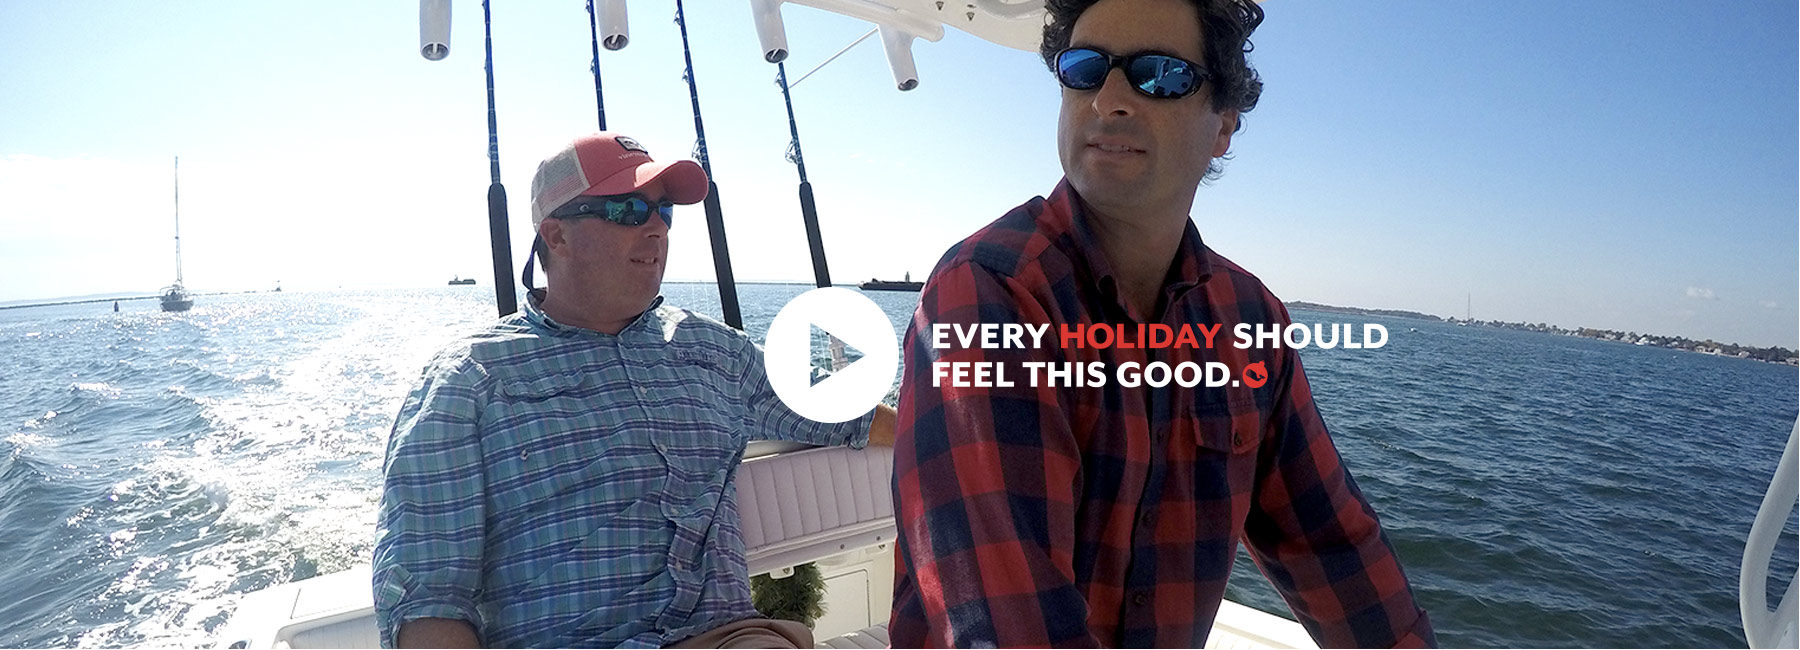 Every Holiday Should Feel This Good. Click To Play A Video.